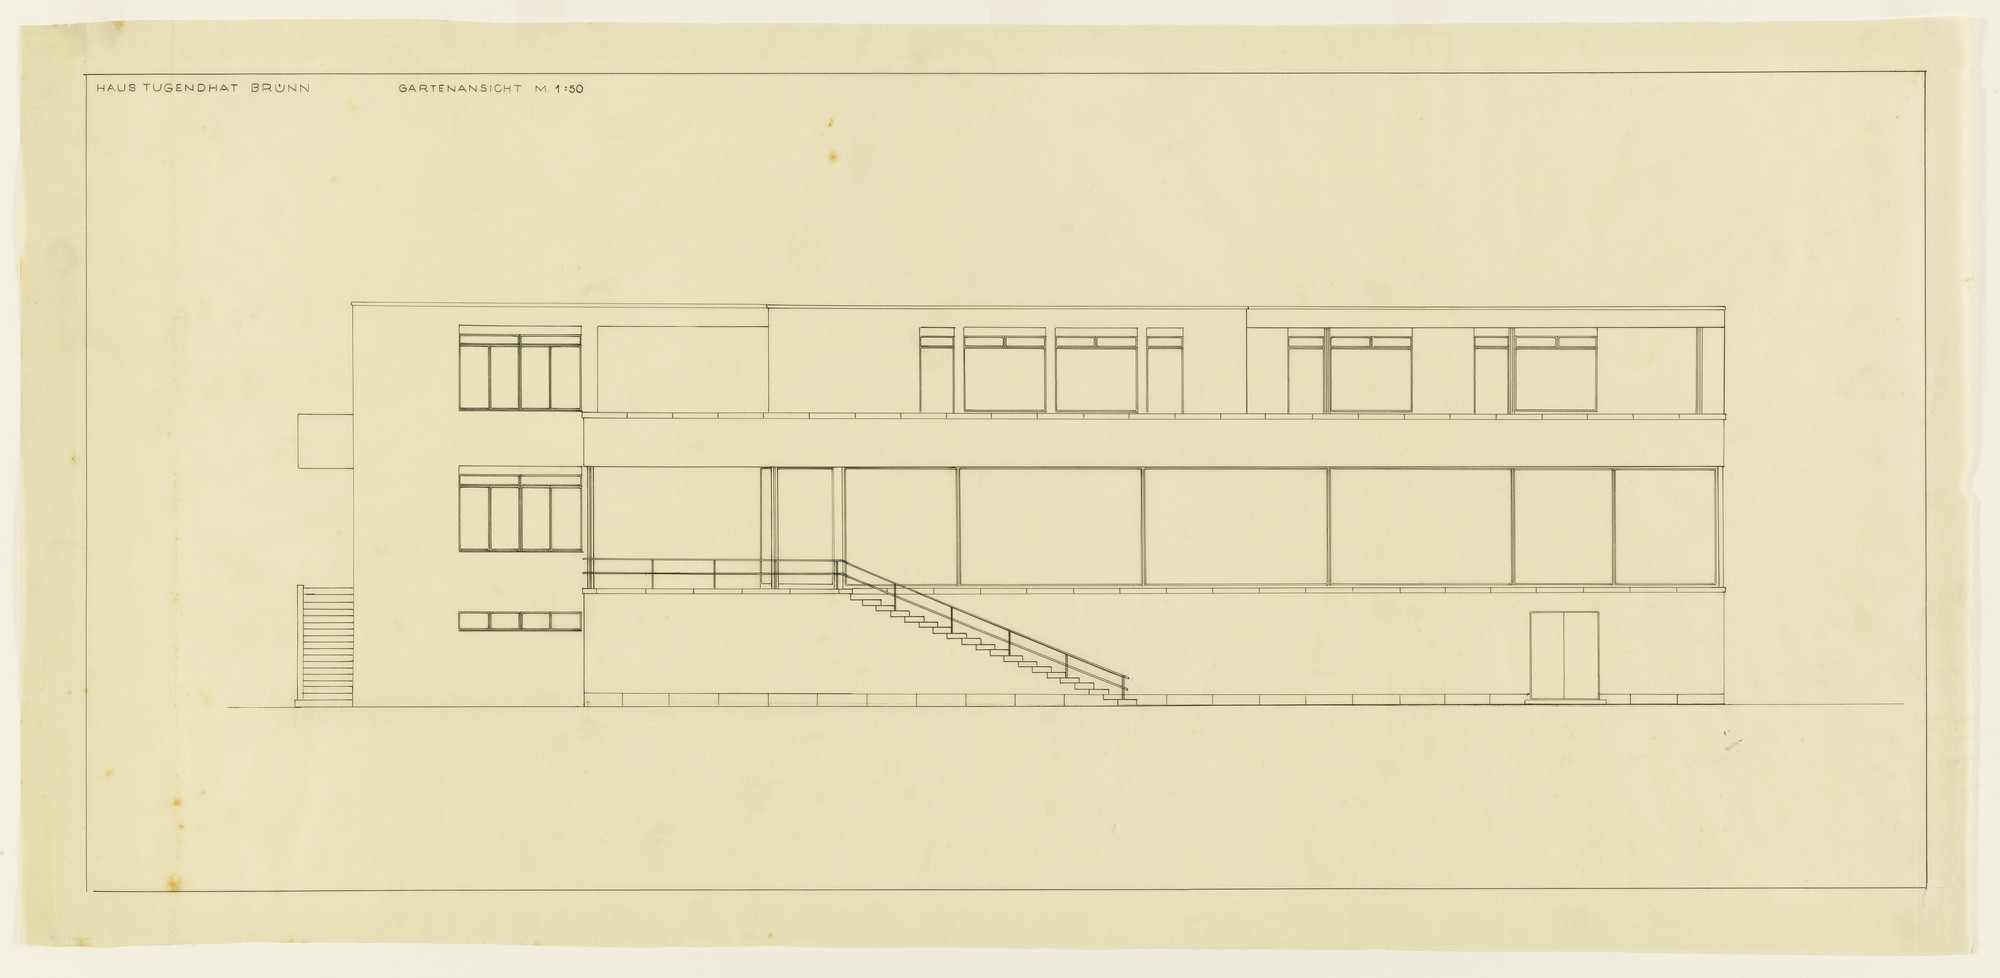 Ludwig Mies van der Rohe. Tugendhat House, Brno, Czech Republic, Elevation. 1928-30